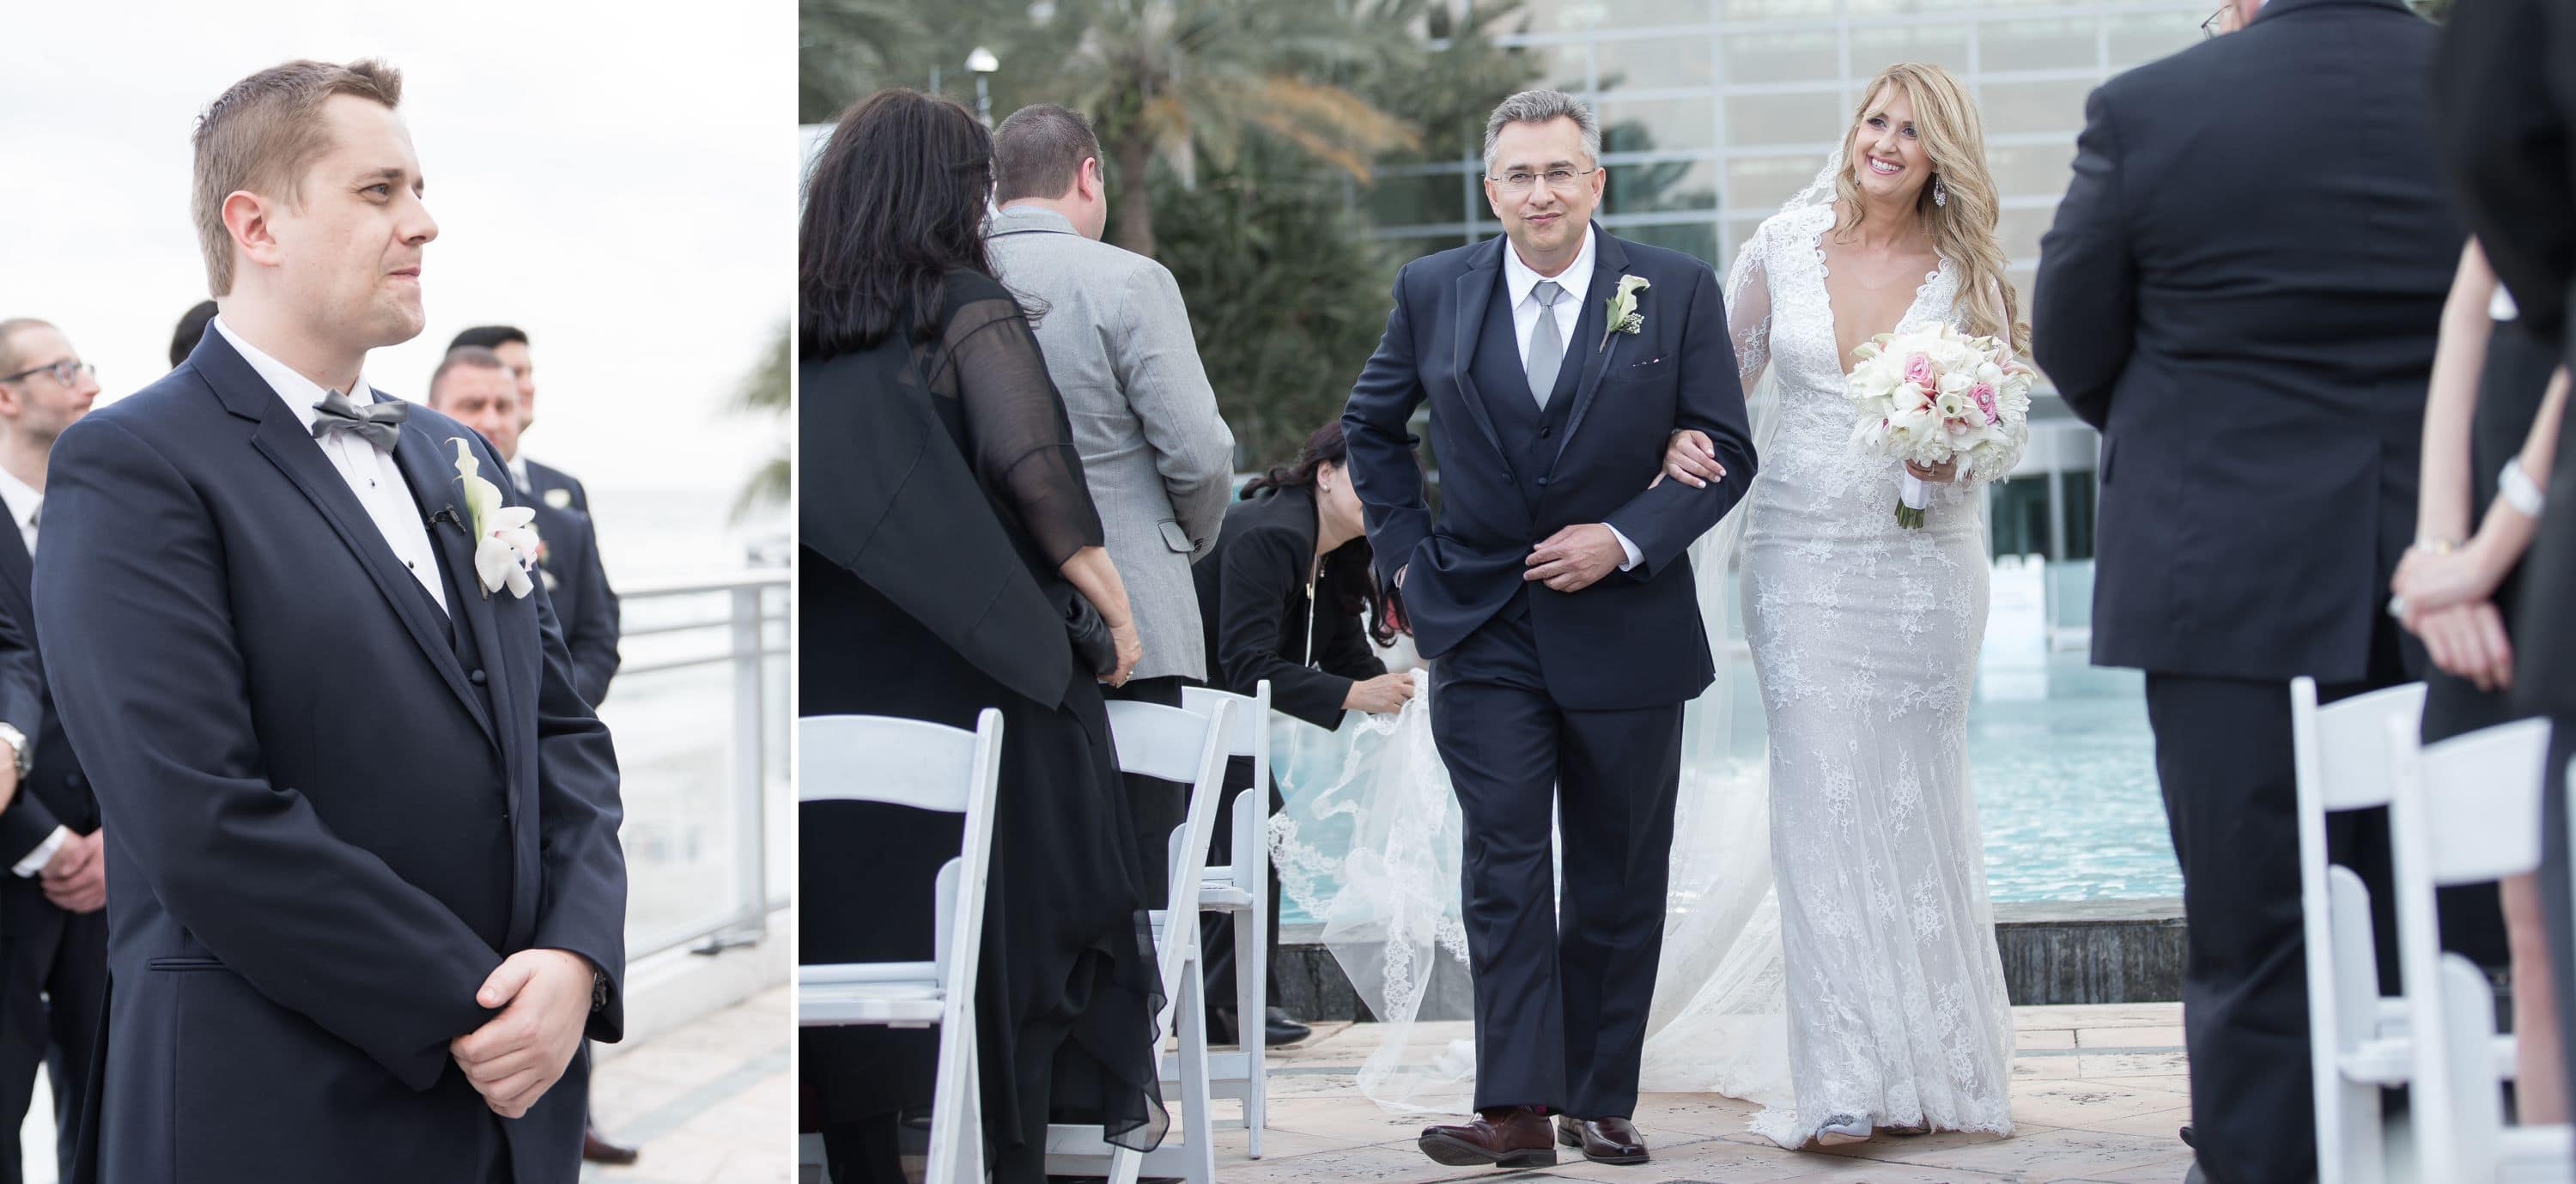 Bride comes down the isle and grooms reaction at this Diplomat Beach Resort Wedding